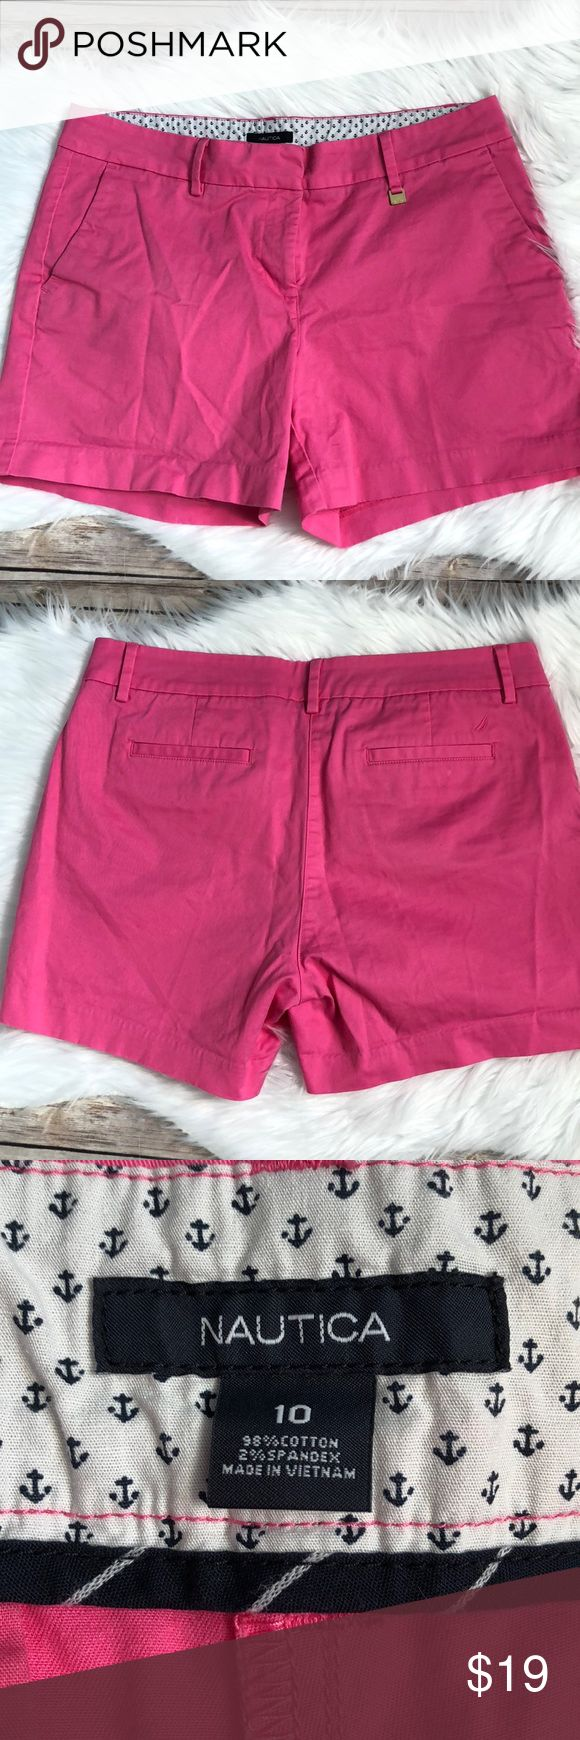 """Nautica Hot Pink Shorts Size 10 Hot pink shorts size 10 17"""" waist laying flat 5"""" inseam Excellent condition, only worn a few times Nautica Shorts"""